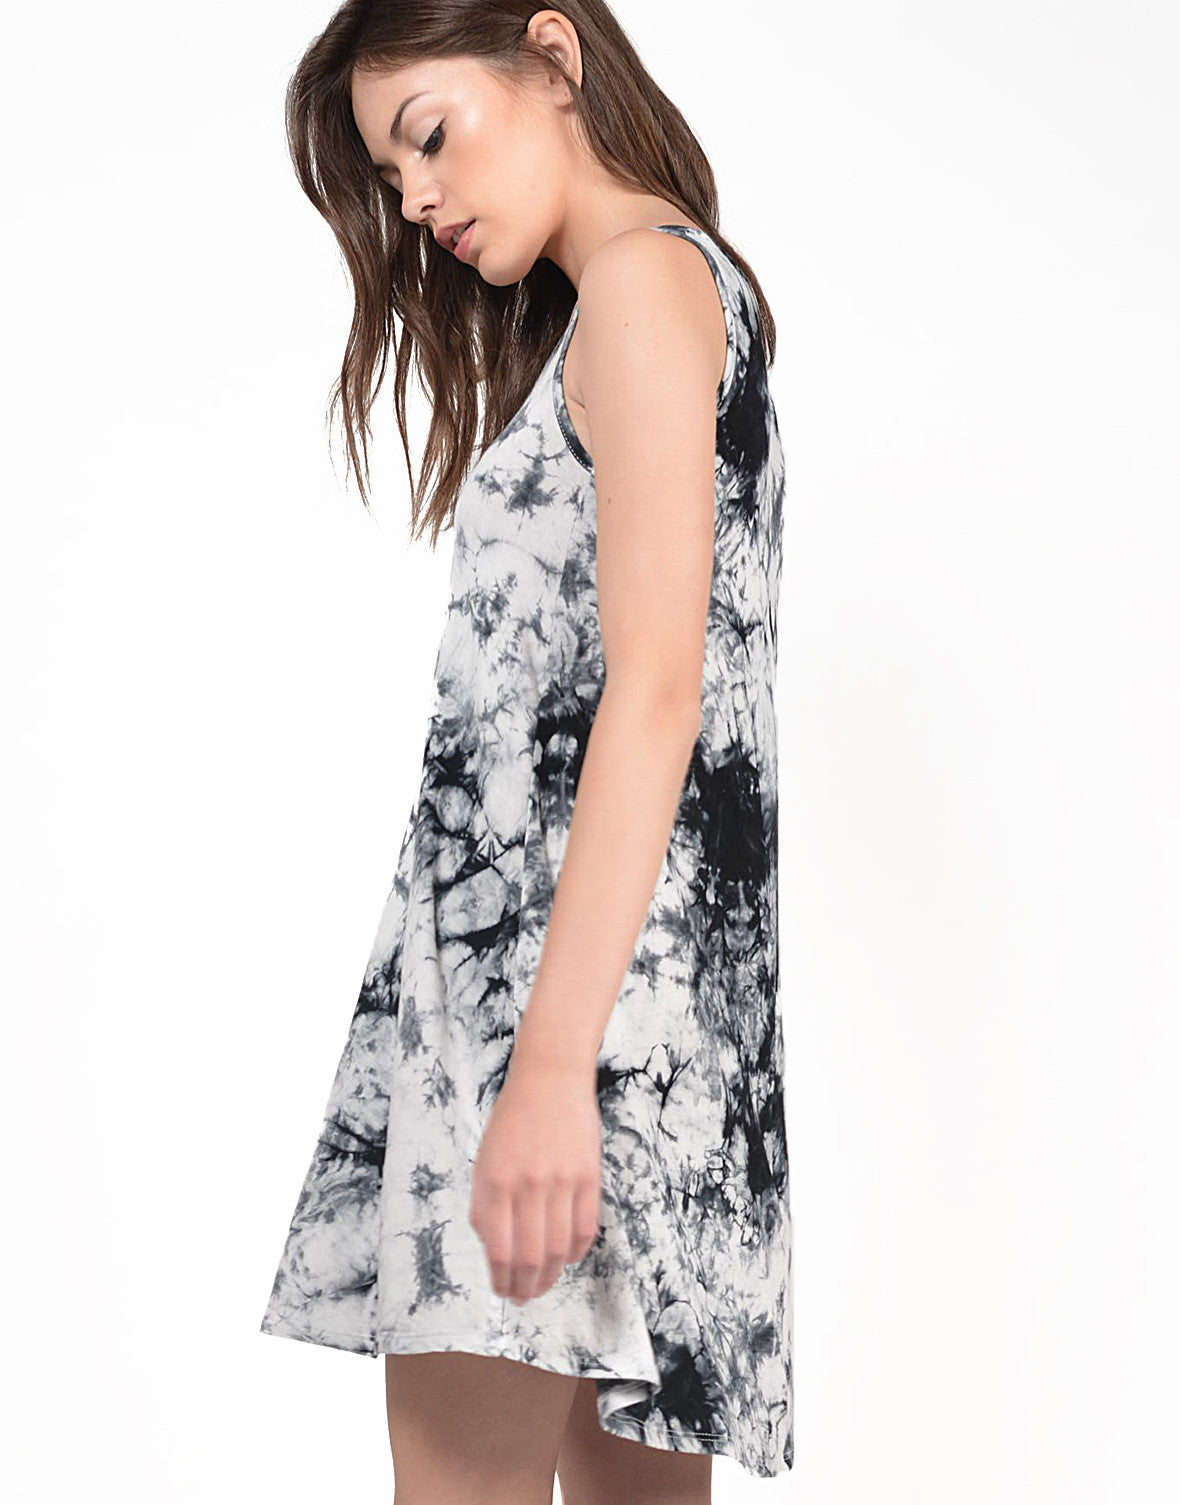 Detail of Ink Dye Tank Dress